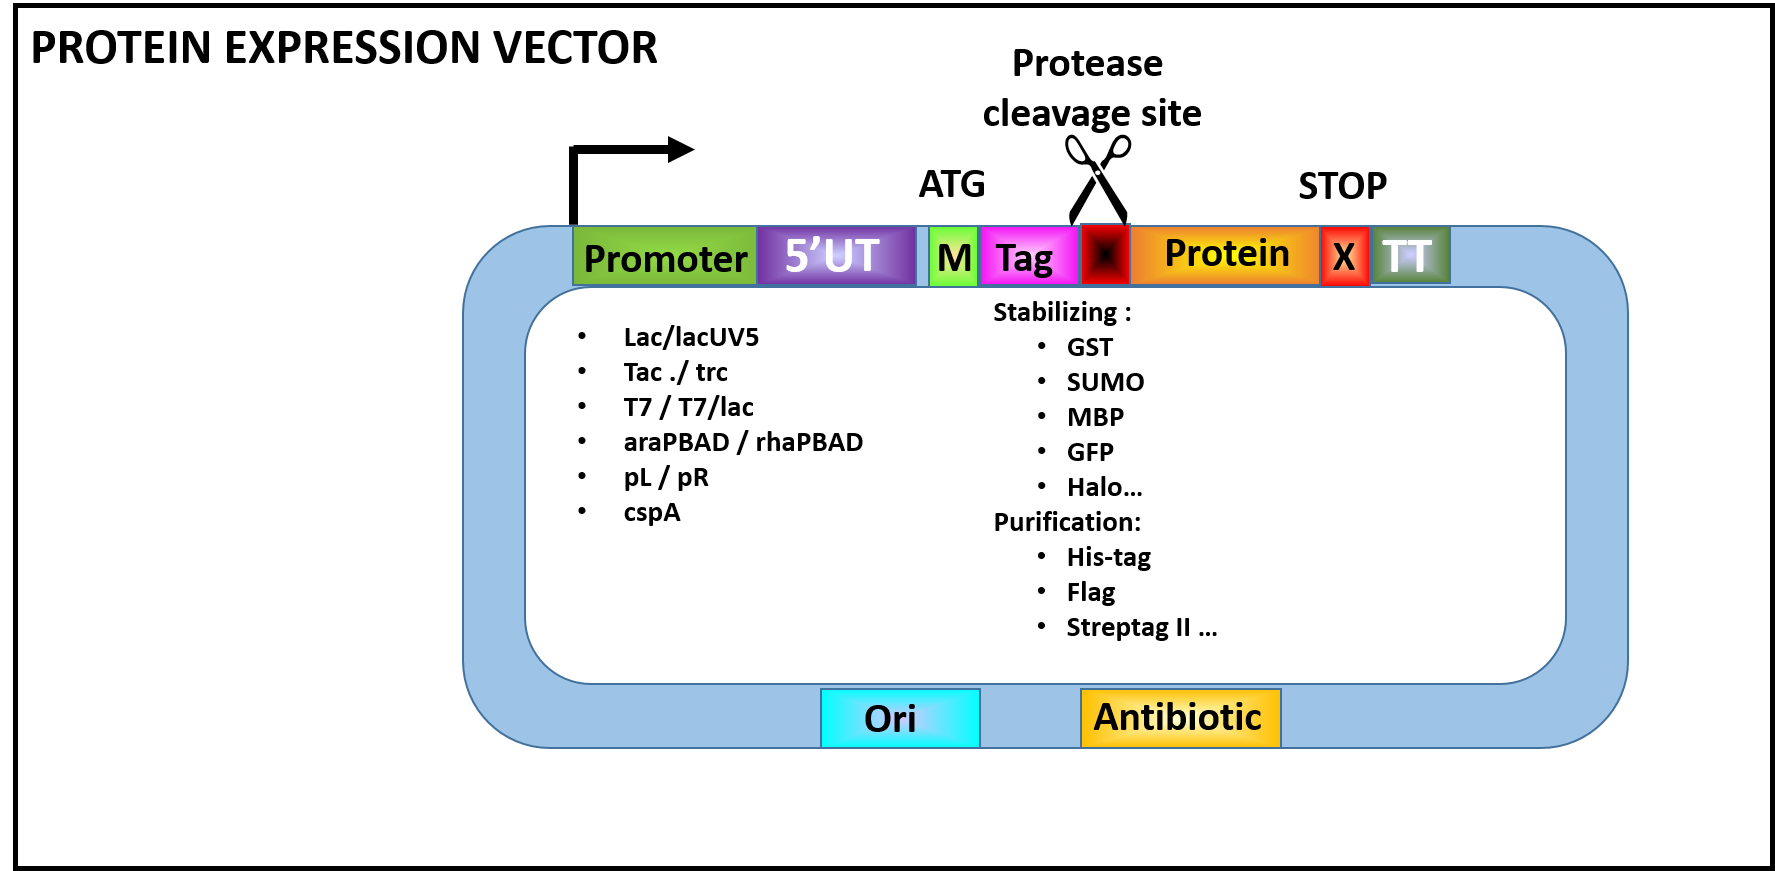 Fig 1. : Basic expression vectors for protein expression in E. coli of cytoplasmic proteins.